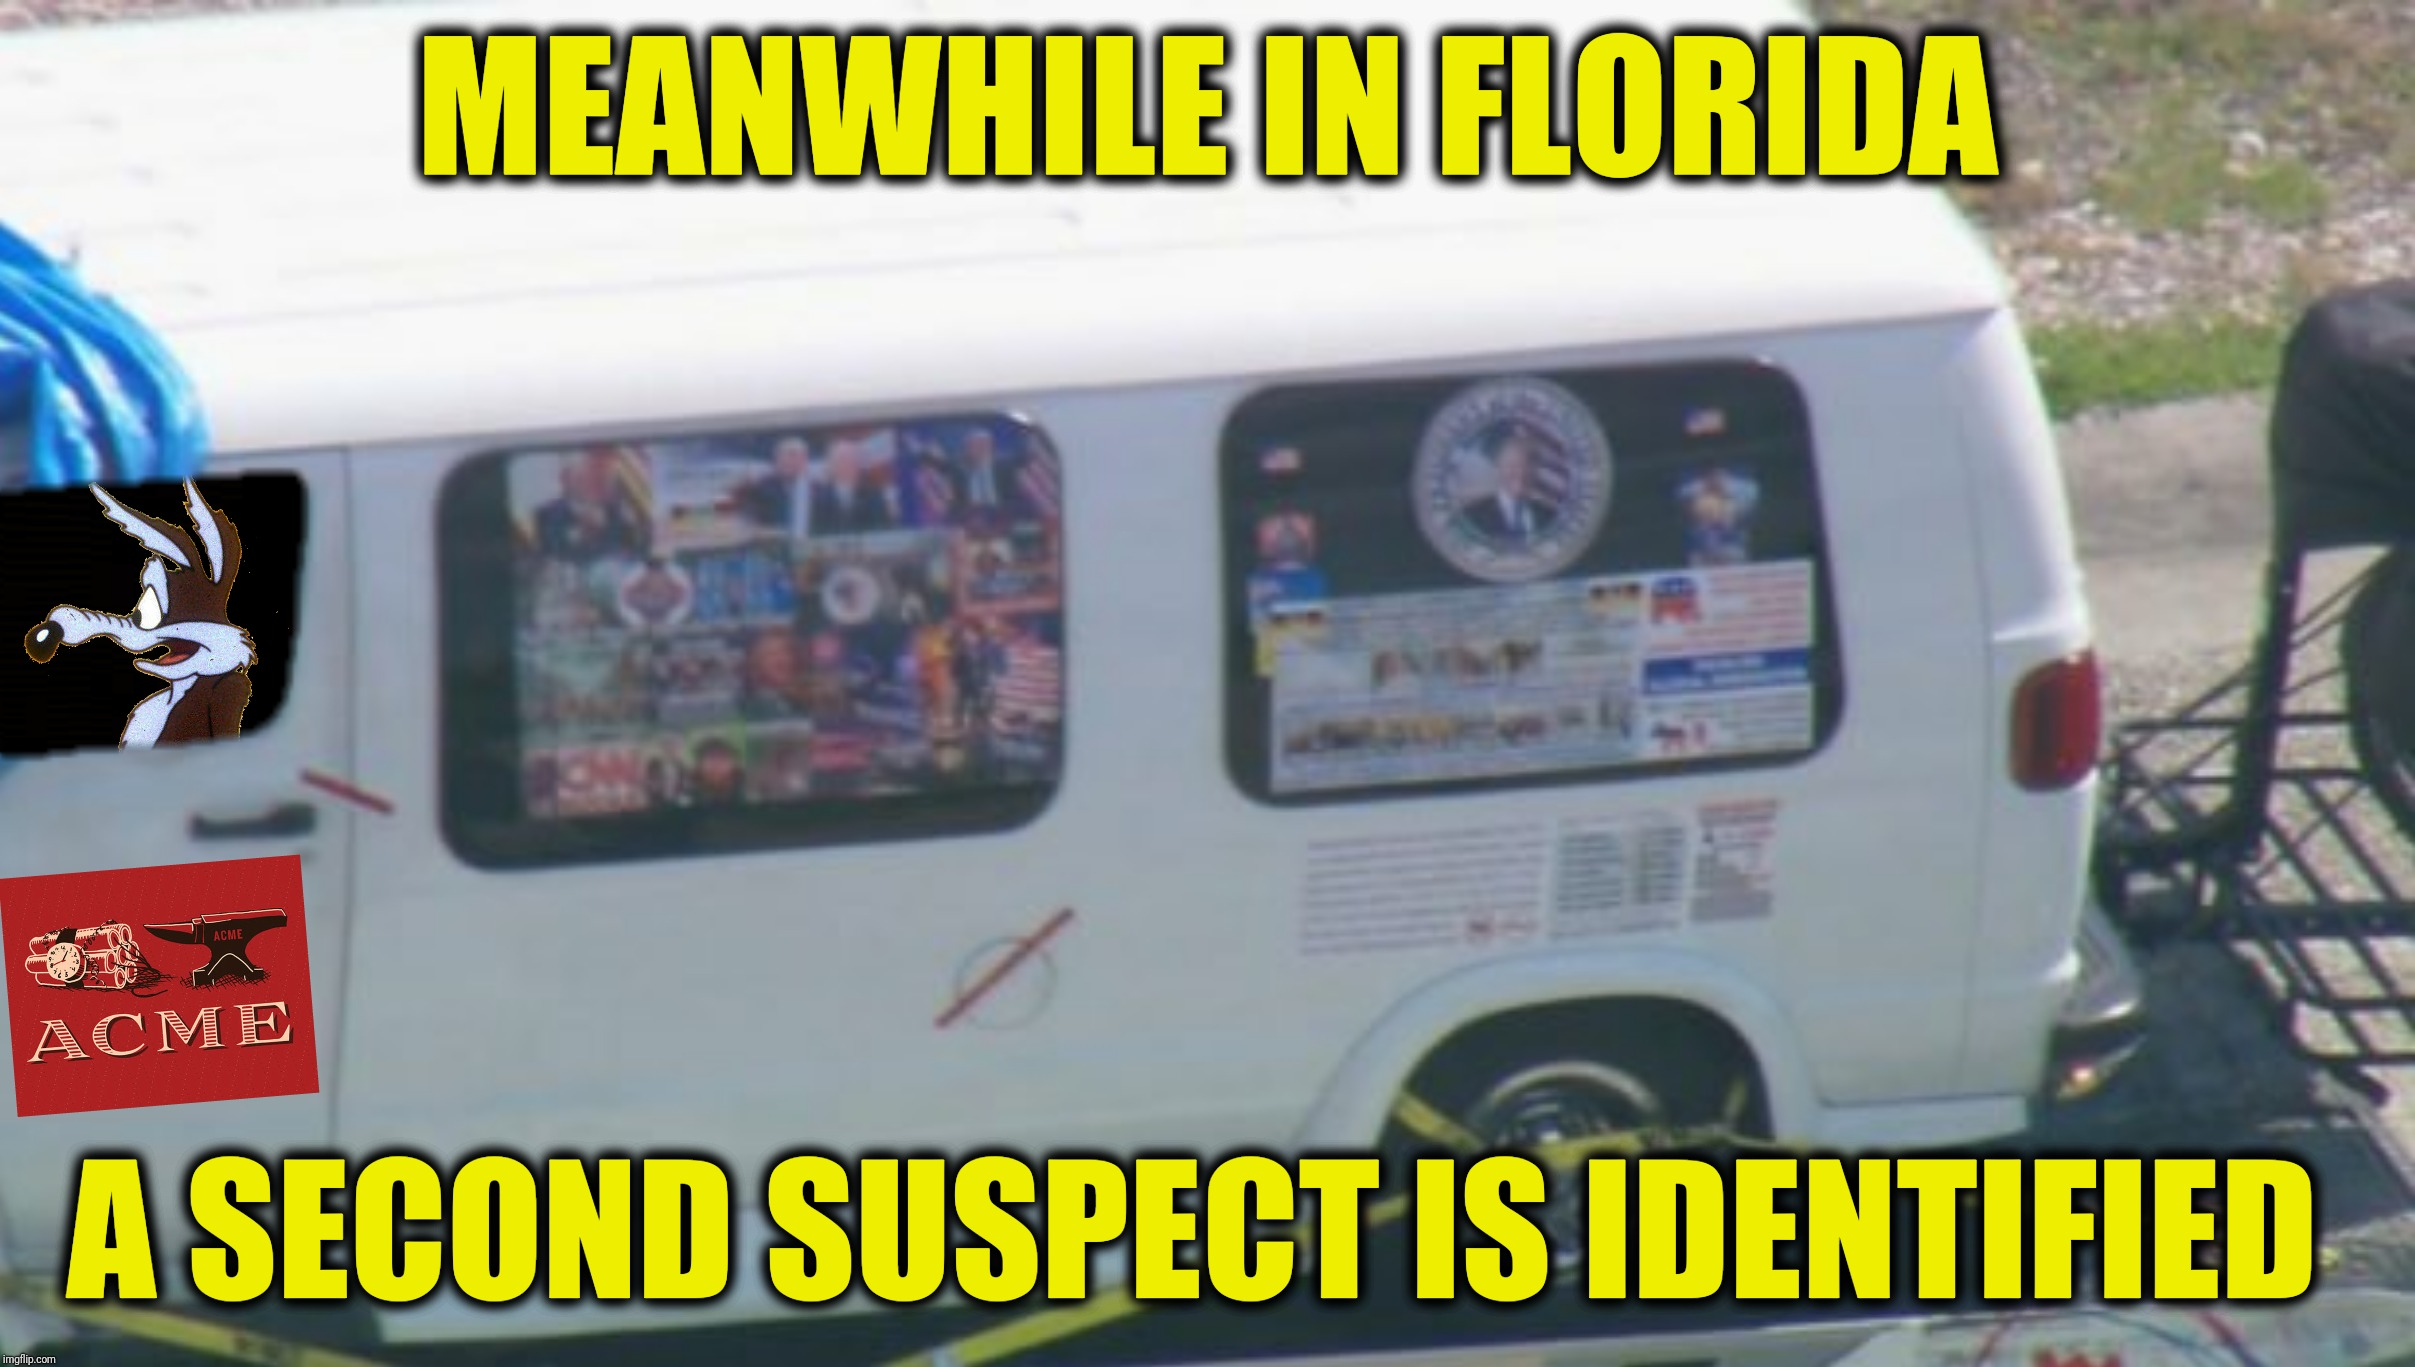 This just in:  an envelope containing an anvil was found in Nancy Pelosi's mailbox | MEANWHILE IN FLORIDA A SECOND SUSPECT IS IDENTIFIED | image tagged in wile e coyote,acme,cesar sayoc,nancy pelosi | made w/ Imgflip meme maker